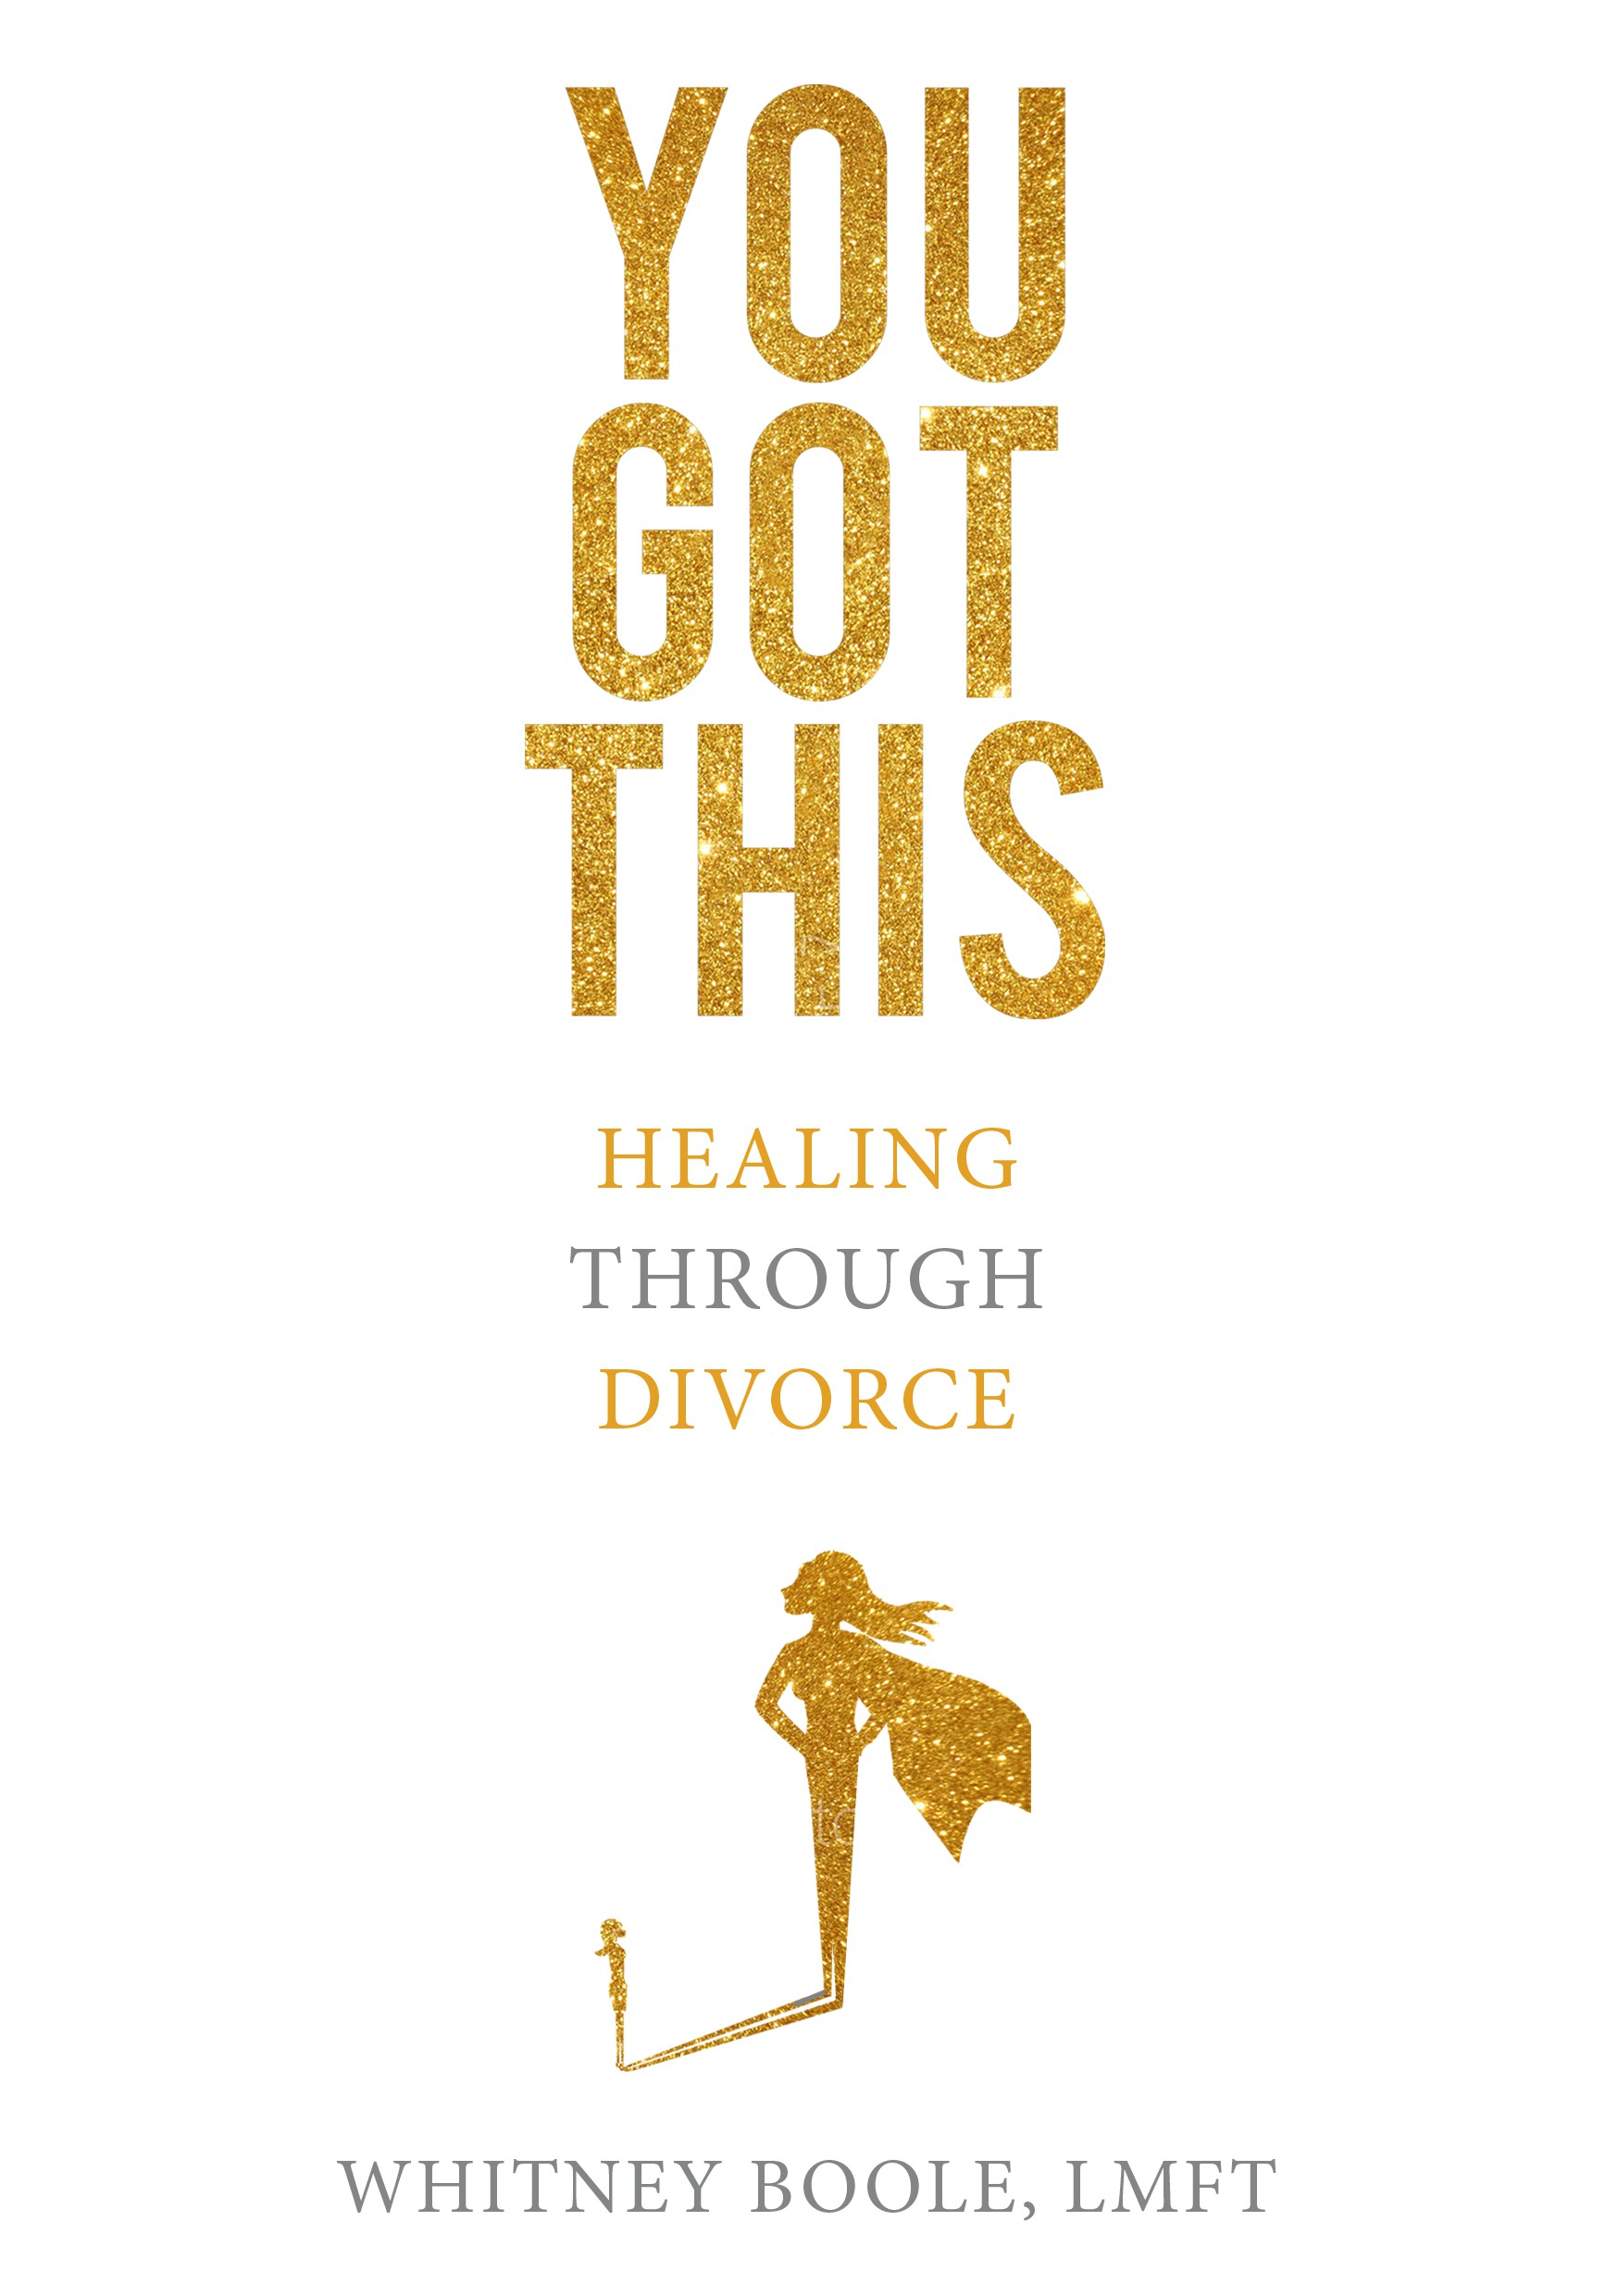 Need a Bestselling Sleek Cover for a book (You Got This: Healing Through Divorce)